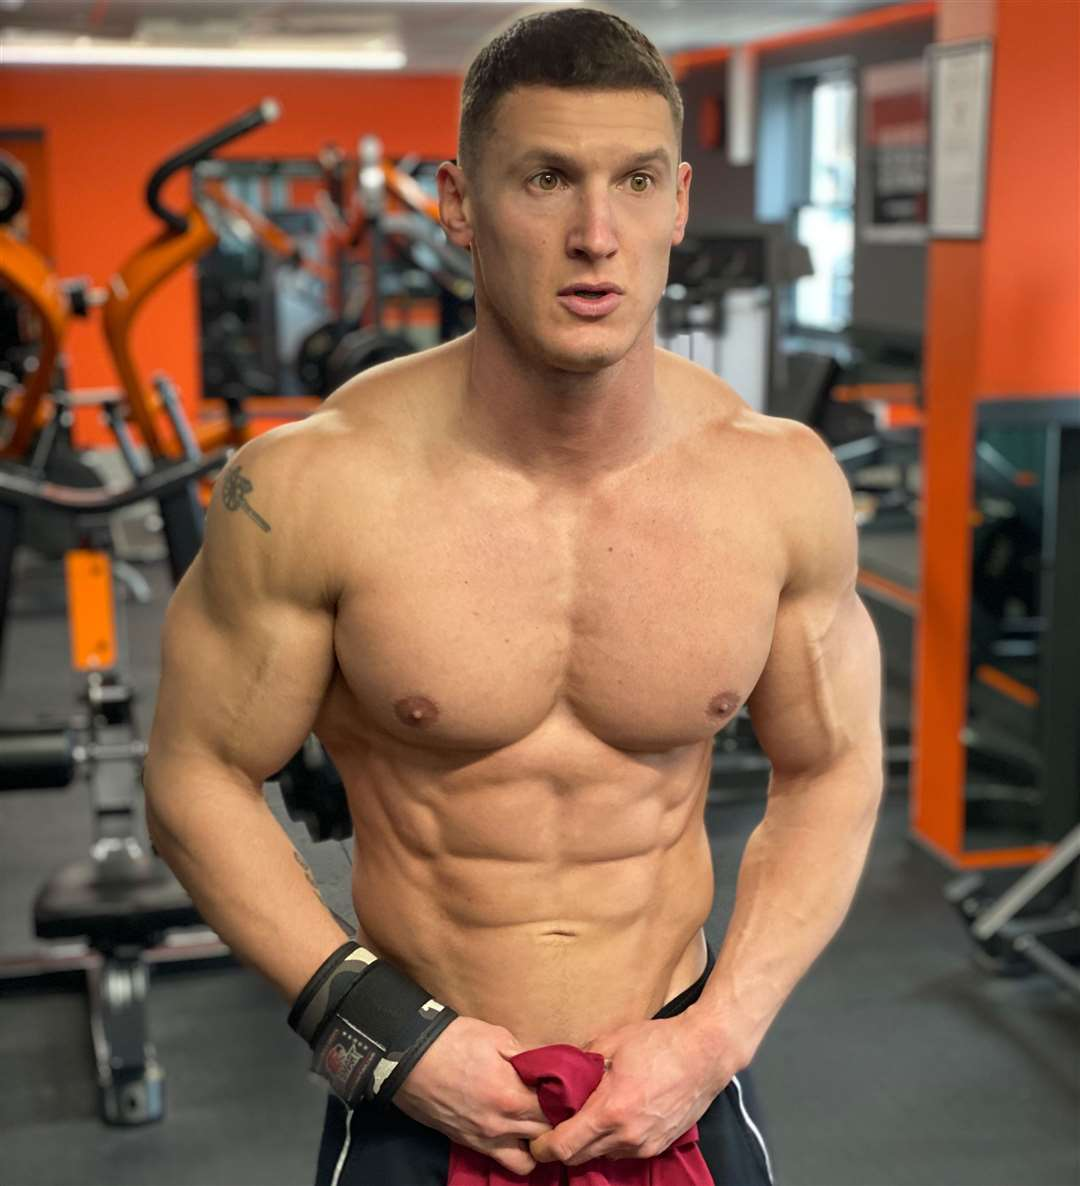 Matt maintains his sculpted physique, with 13% body fat, by training for two hours in the gym, five days a week